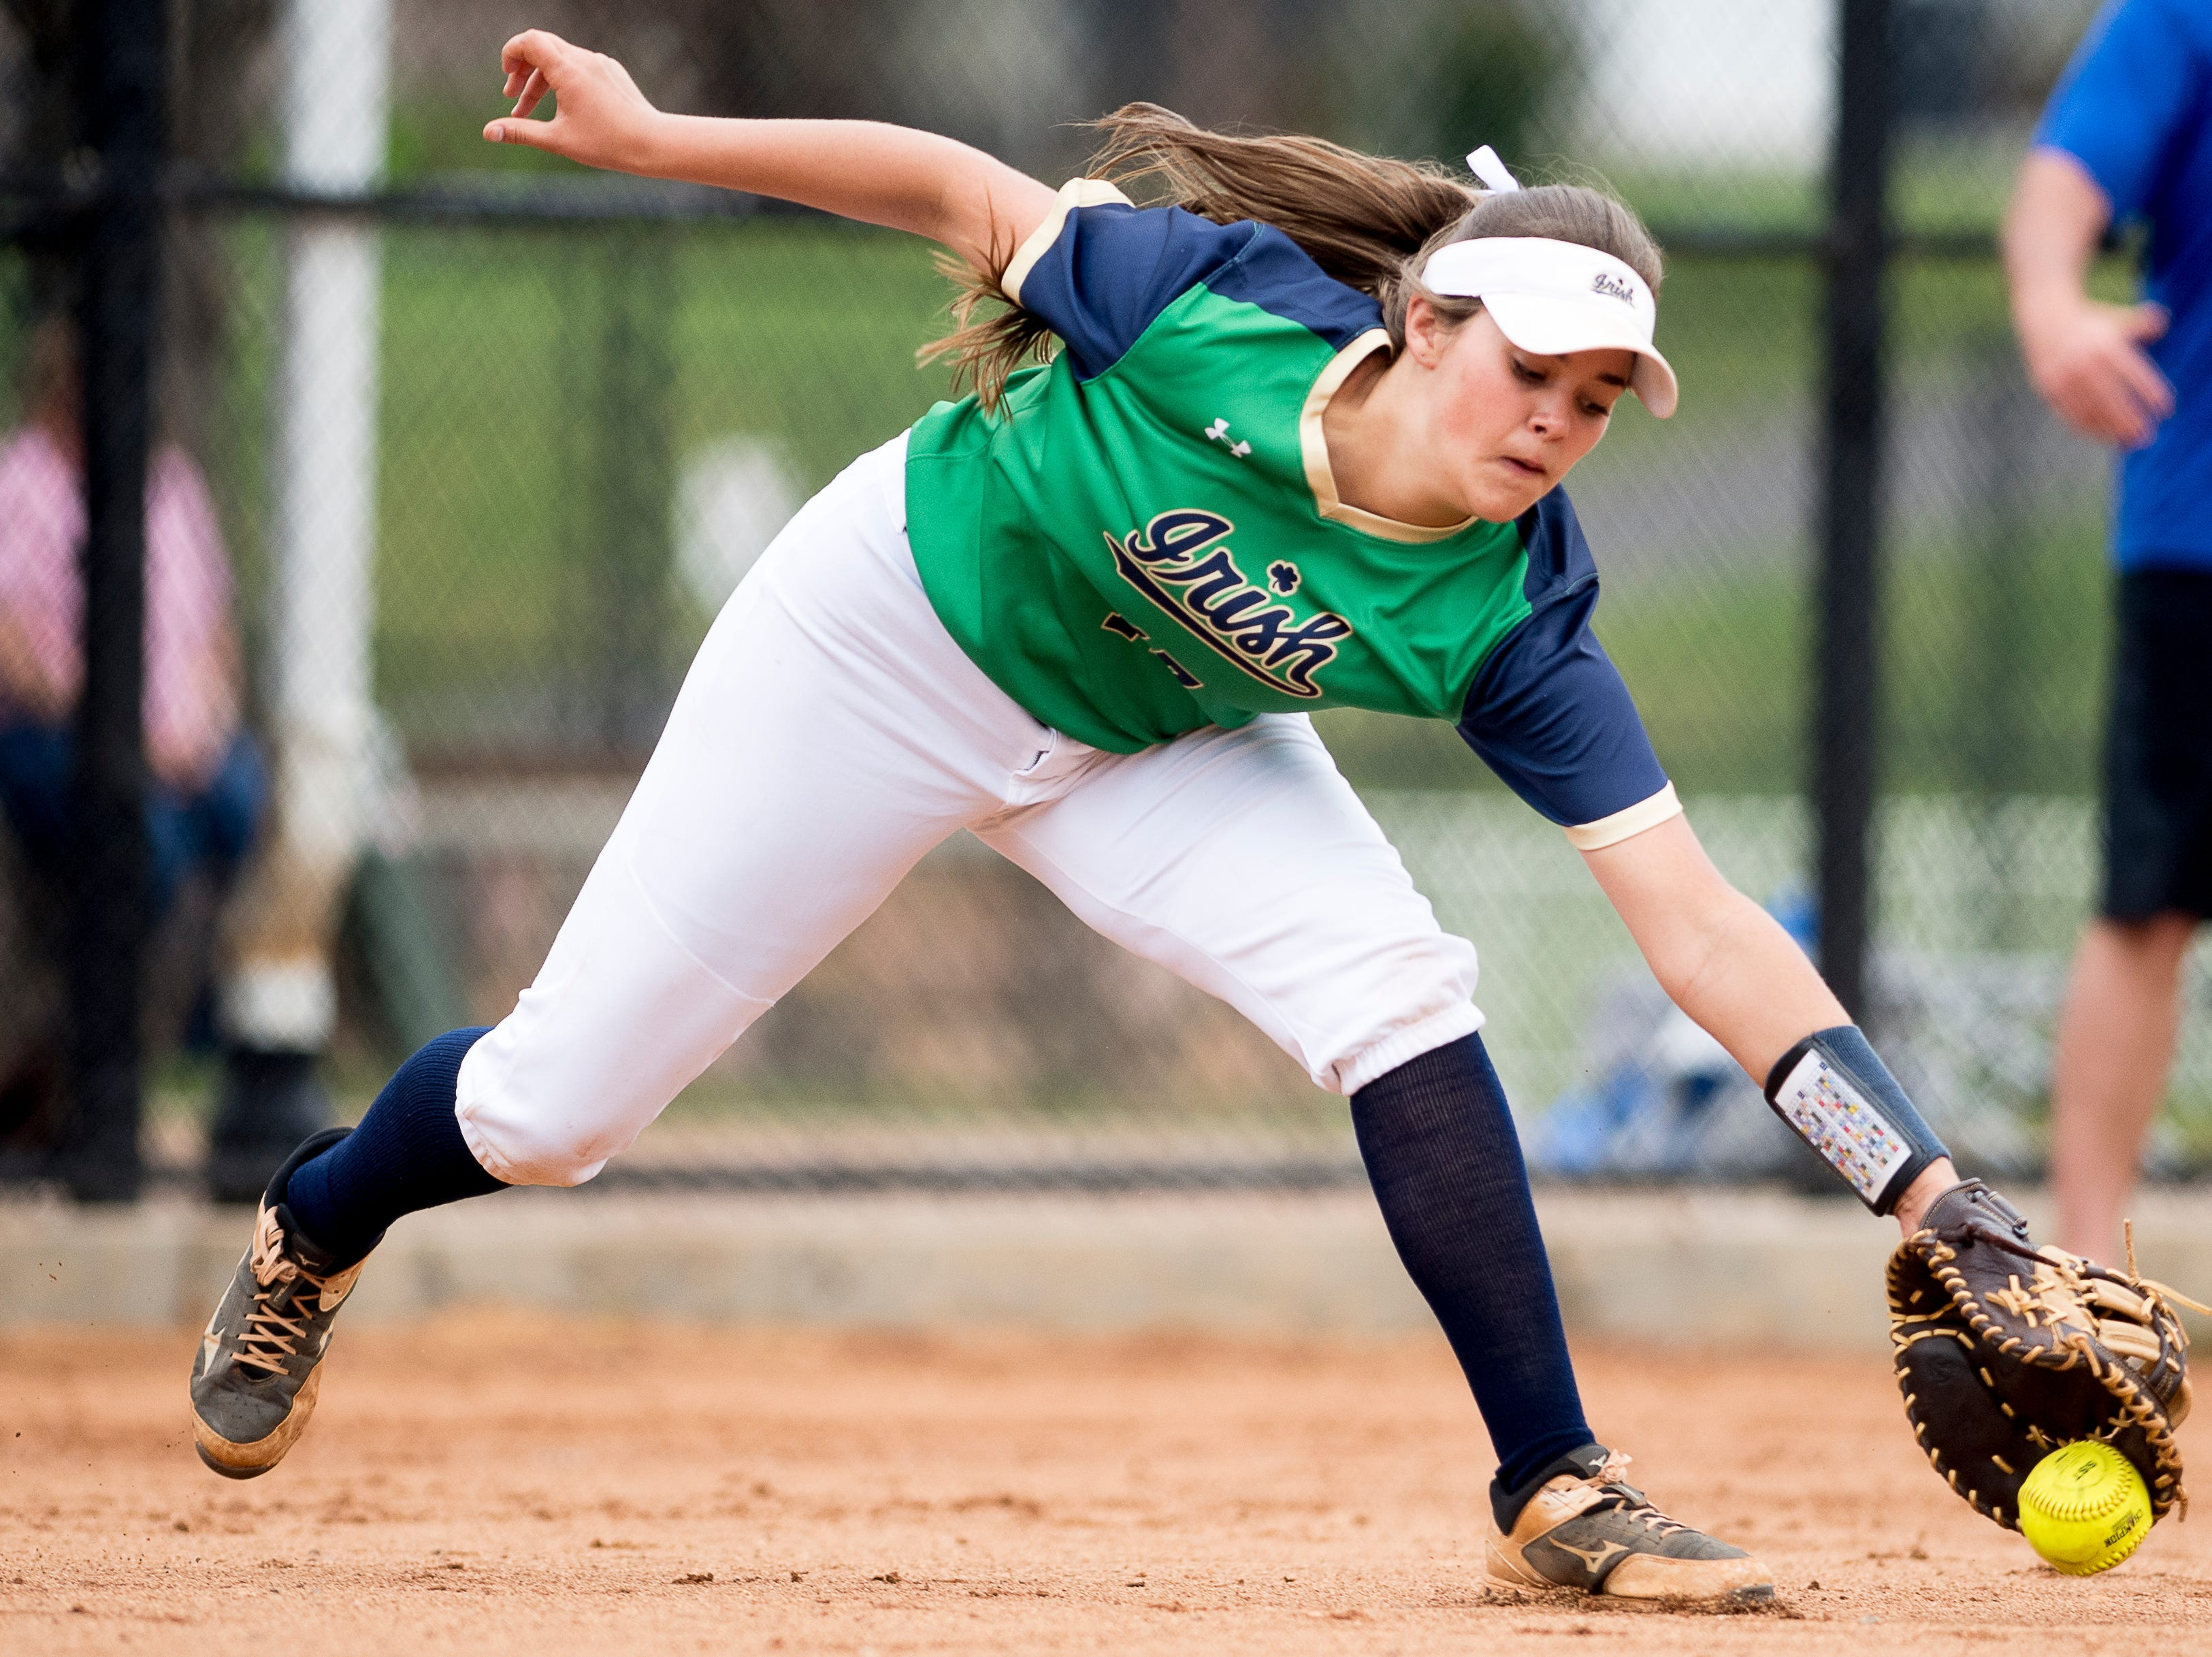 Catholic's Anne Carter (17) reaches for a ground ball during a softball game between Catholic and Karns at Caswell Park in Knoxville, Tennessee on Friday, April 12, 2019.